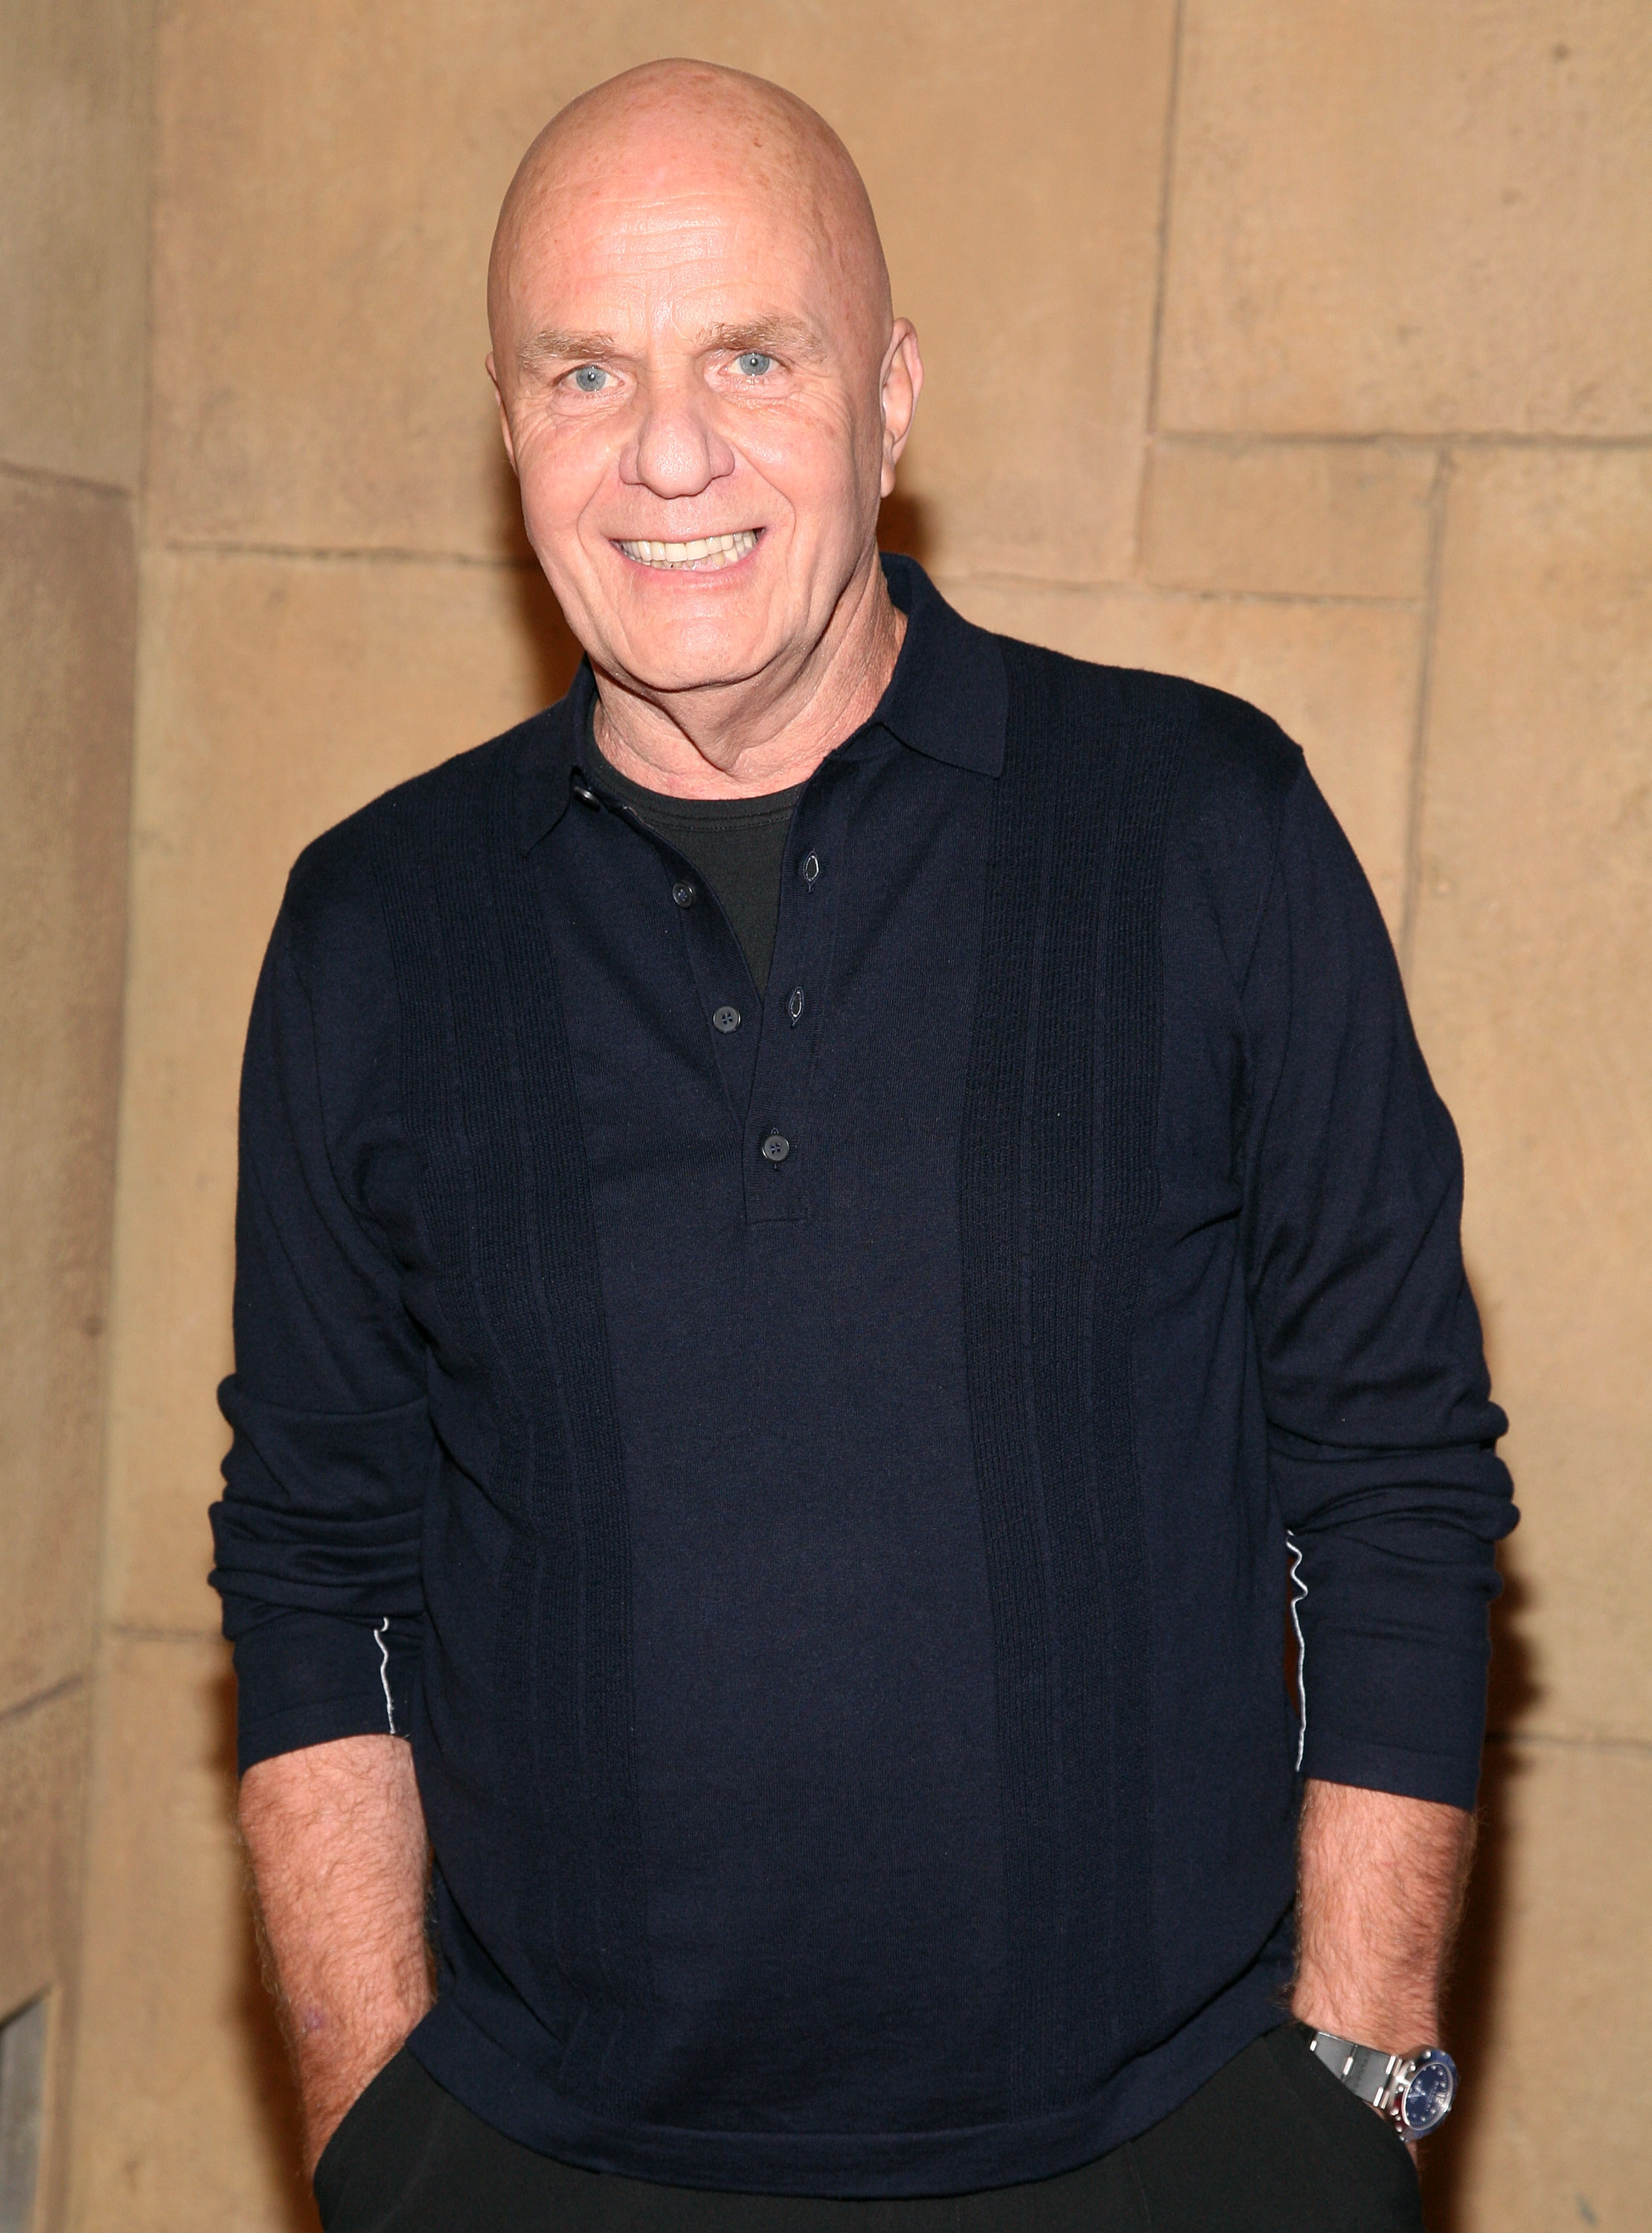 Author Wayne Dyer attends the premiere of Ambition to Meaning held at the Lloyd E. Rigler Theater at the Egyptian on Jan. 8, 2009, in Los Angeles